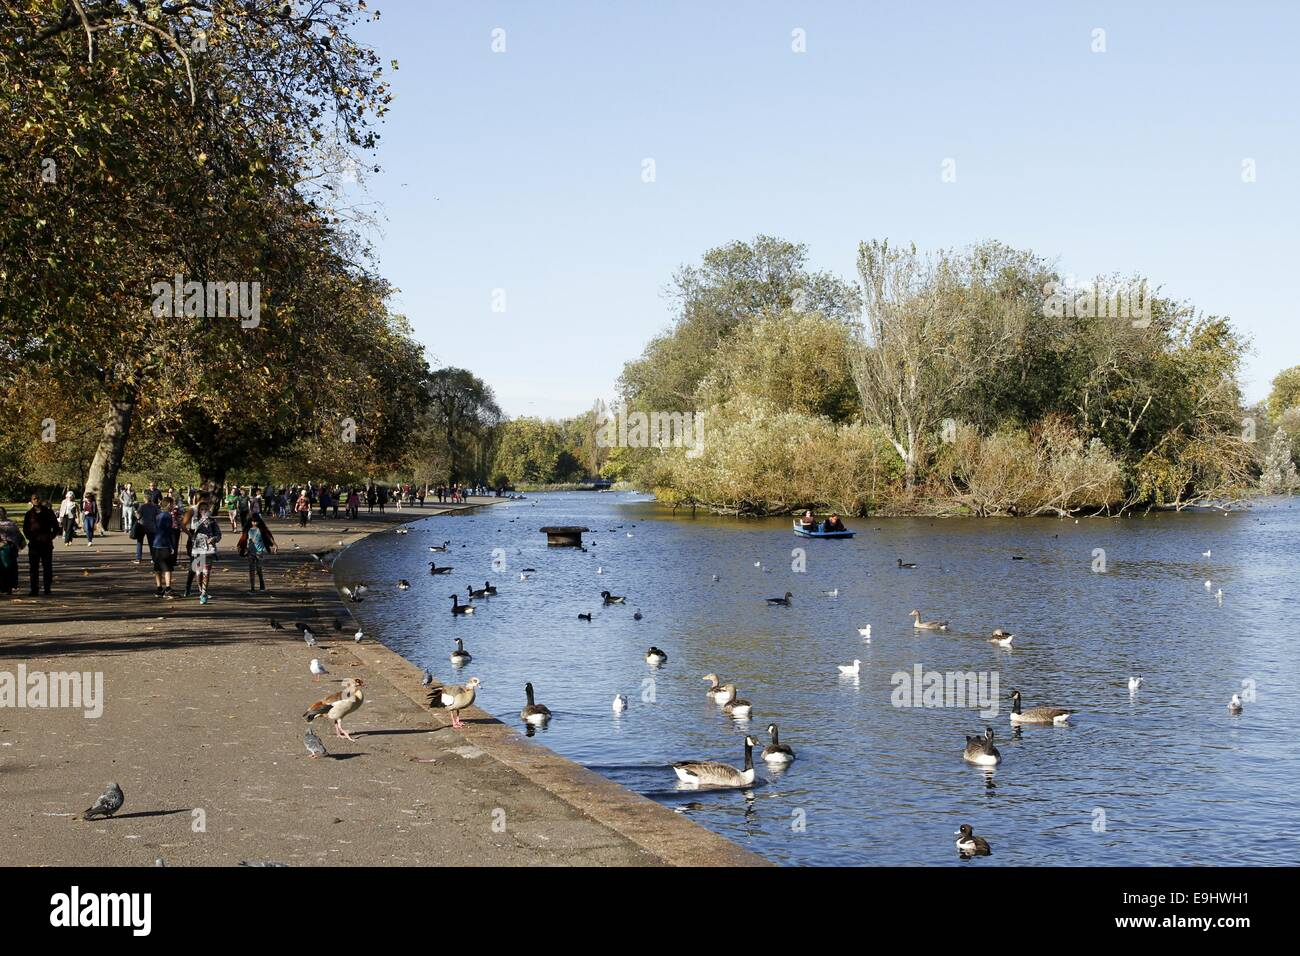 London, UK. 28th October, 2014. 28th October 2014. Tourists enjoy the afternoon sun in Regents park, London, UK - Stock Image